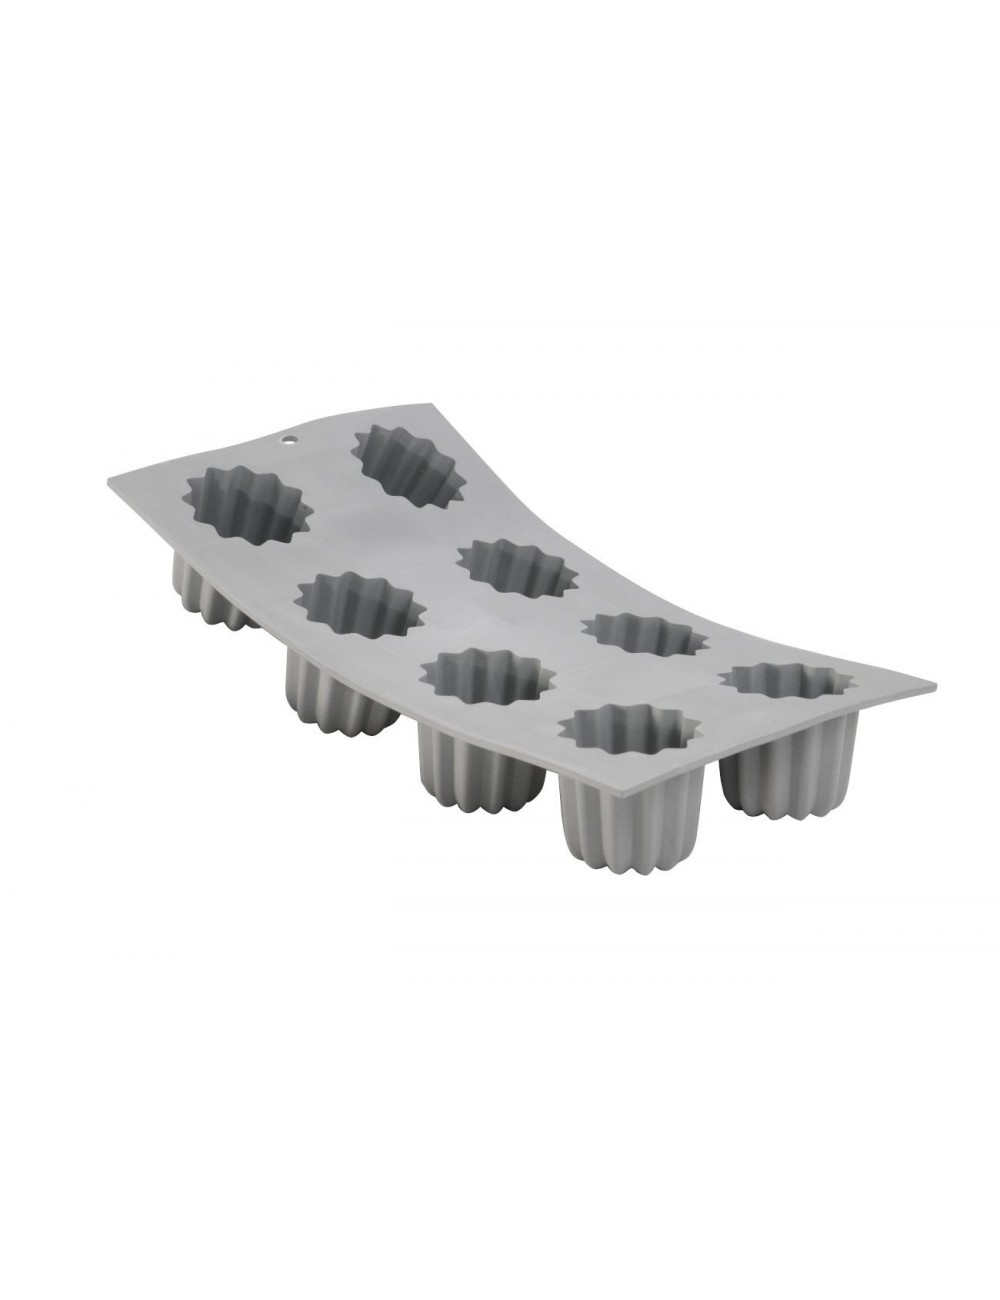 ELASTOMOULE 1/3 FLEXIBLE MOULD - 6 CANNELES